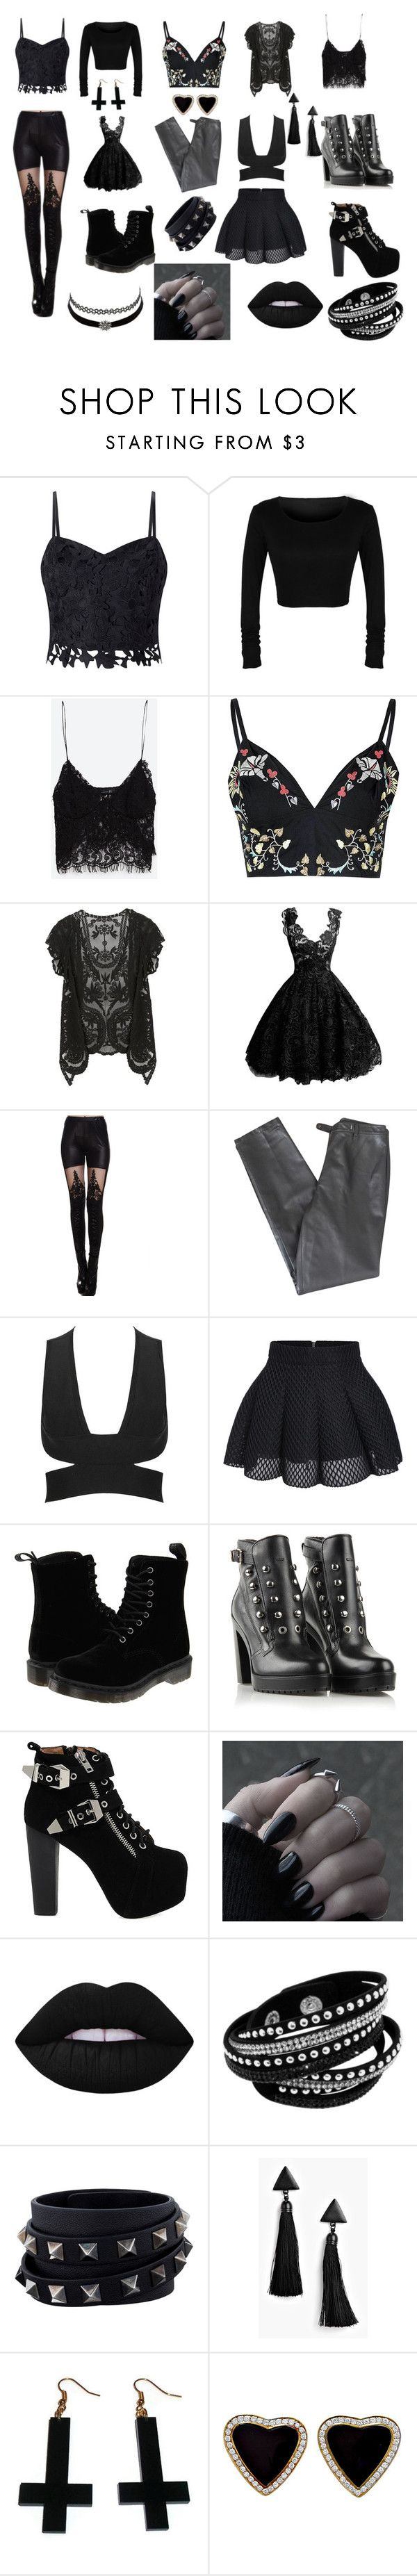 """готы"" by maltsewa-nastya on Polyvore featuring мода, Lipsy, Zara, Glamorous, Lafayette 148 New York, Dr. Martens, Diesel, Jeffrey Campbell, Lime Crime и Charlotte Russe"